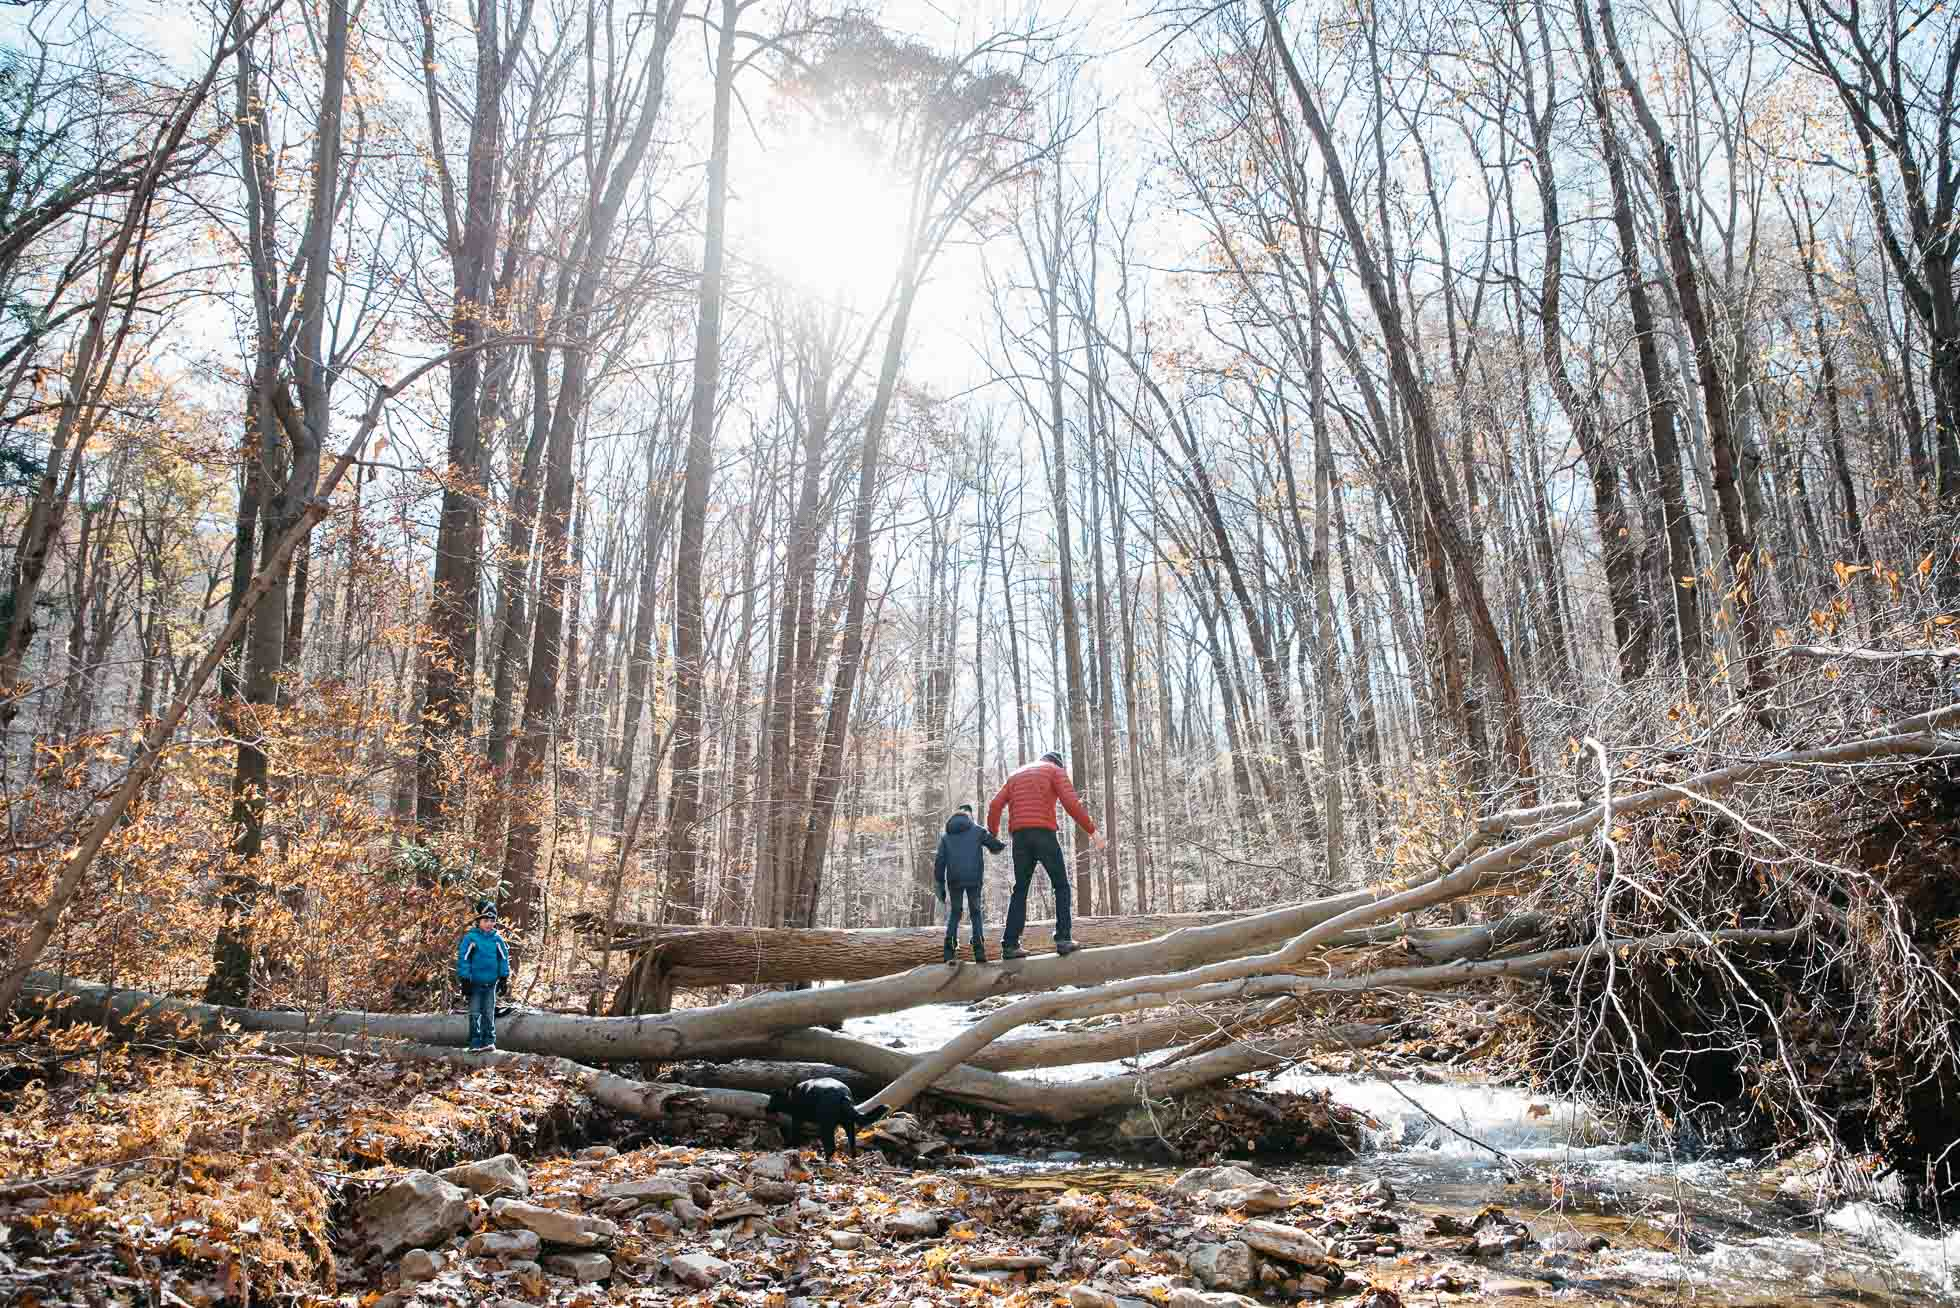 Adventurers, Hiking outside, Linn Run Pennsylvania, Get outside, Crossing Streams